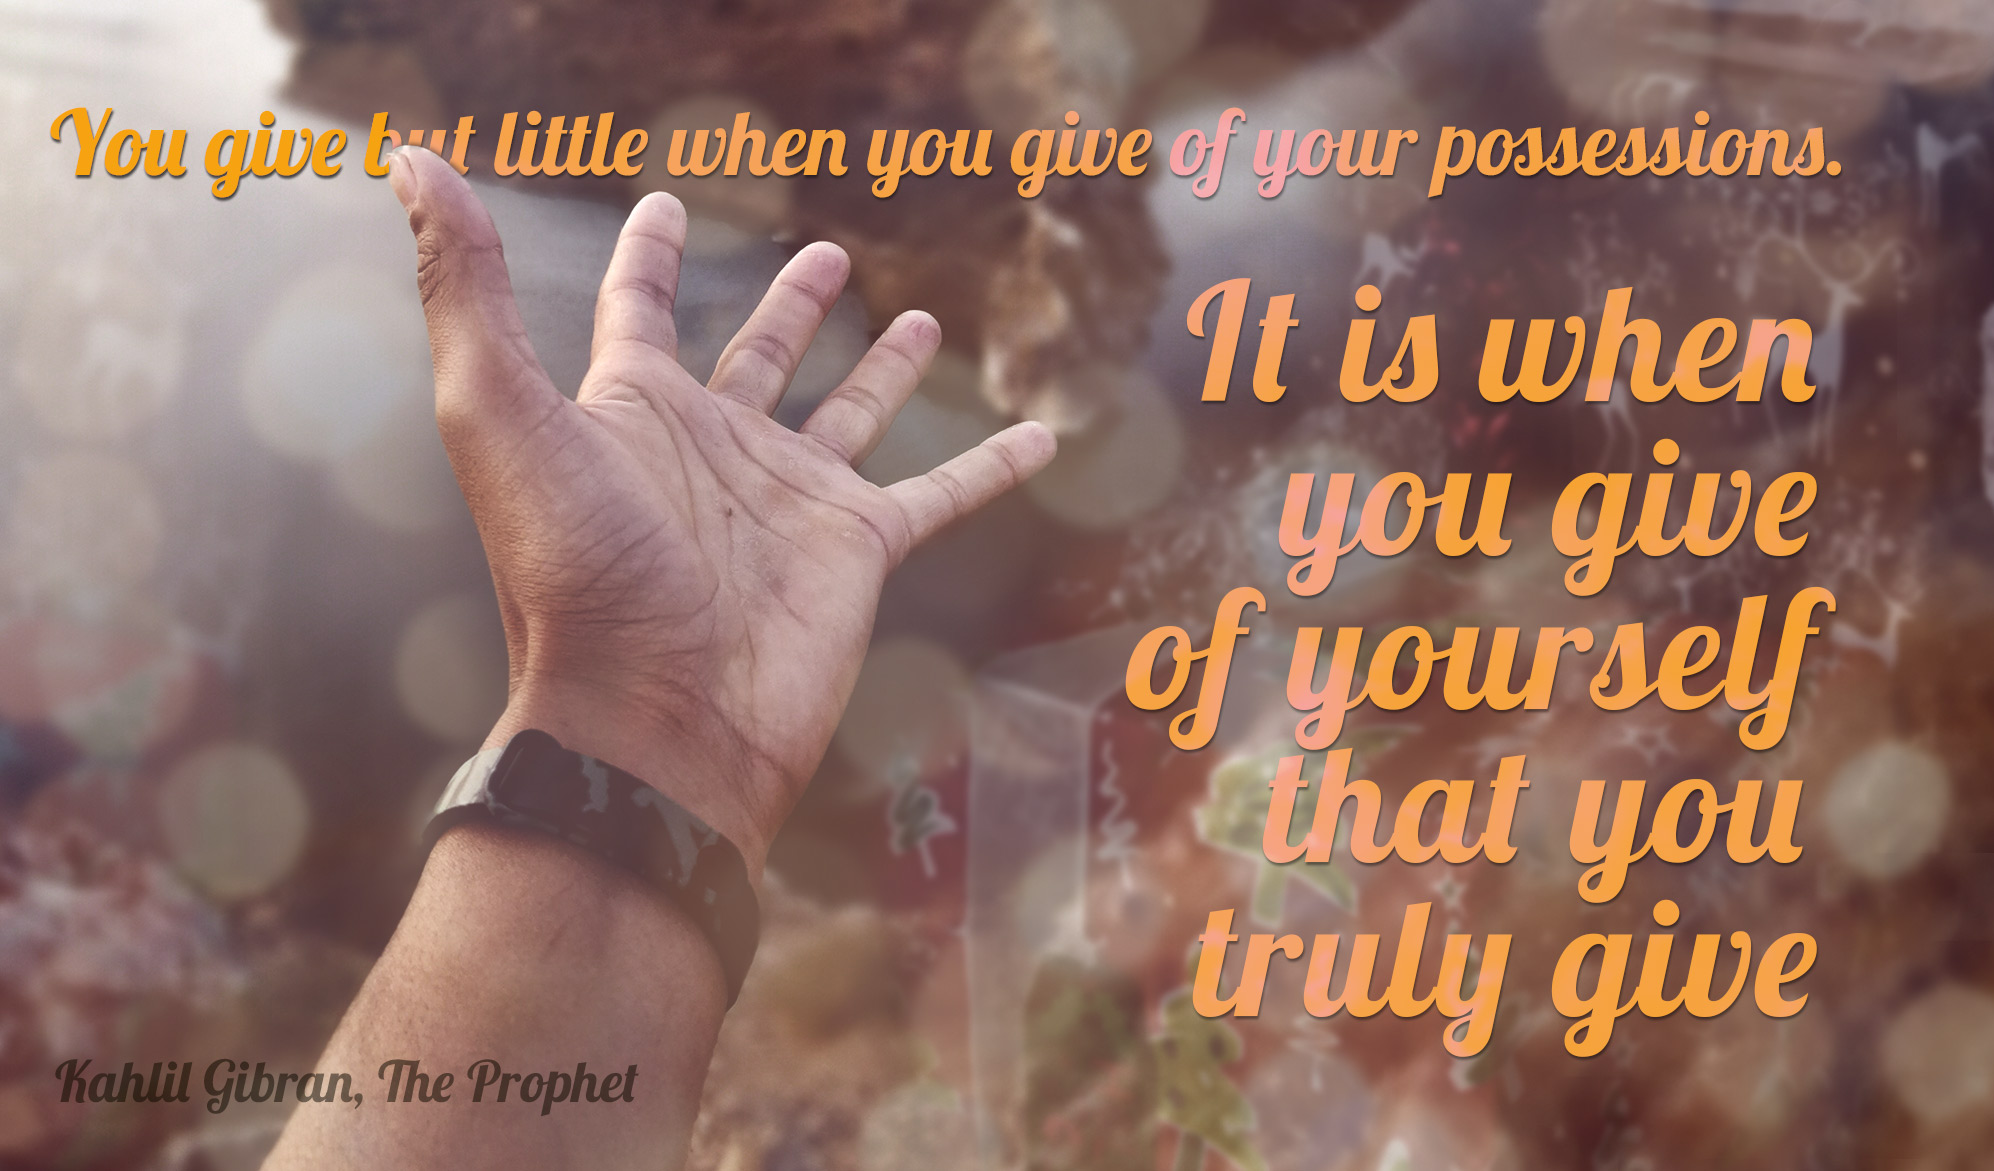 daily inspirational quote image: outstretched hand over a blurry background